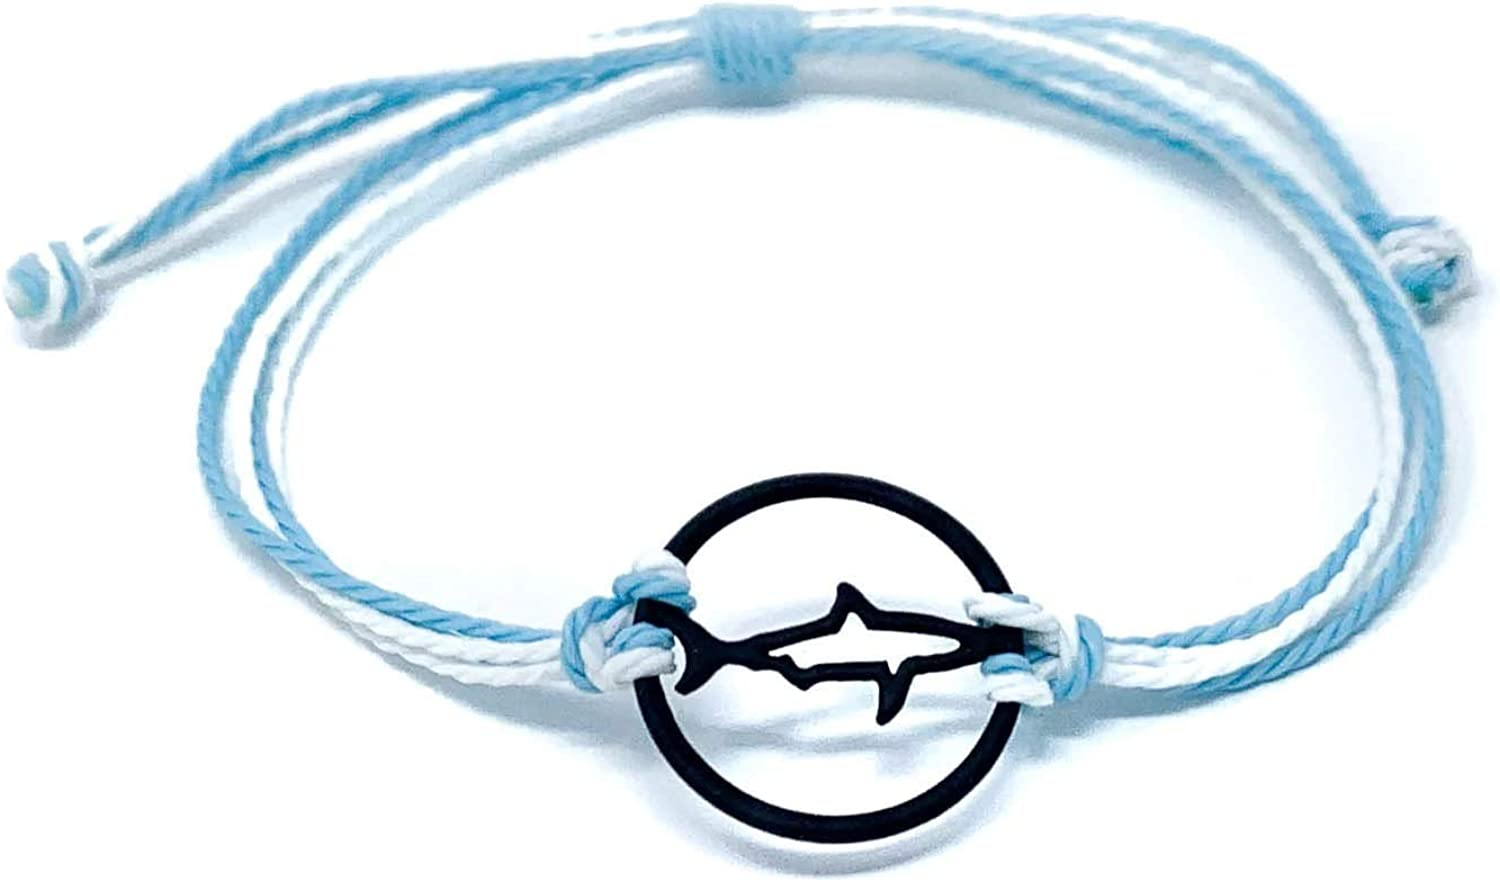 Charming Shark Jewelry - Unisex Charm Ankle Bracelets Black Dolphin Silhouette Adjustable Draw String Band - Waterproof Fashionable Lobster Chain Clasp Perfect for Men Women